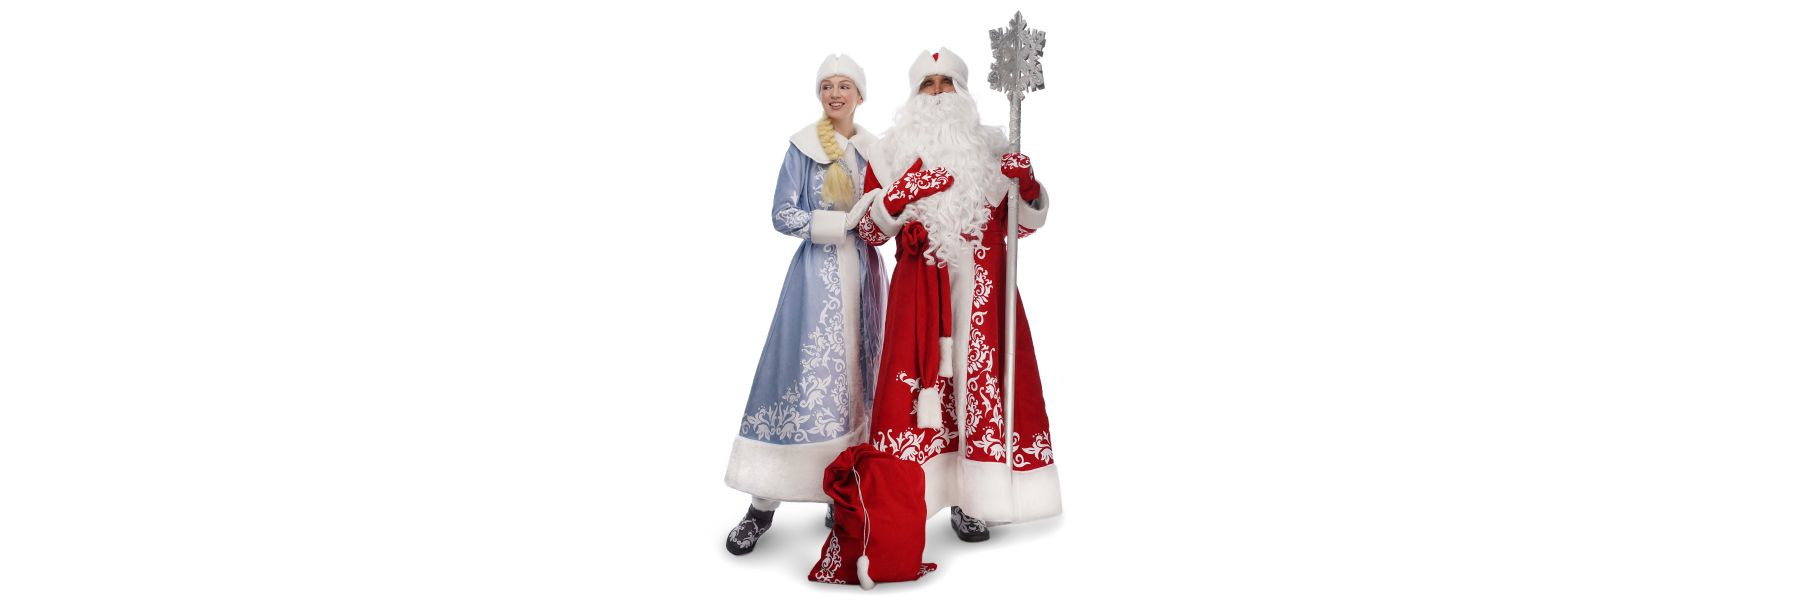 We buy New Year's costumes in Chernivtsi quickly and profitably